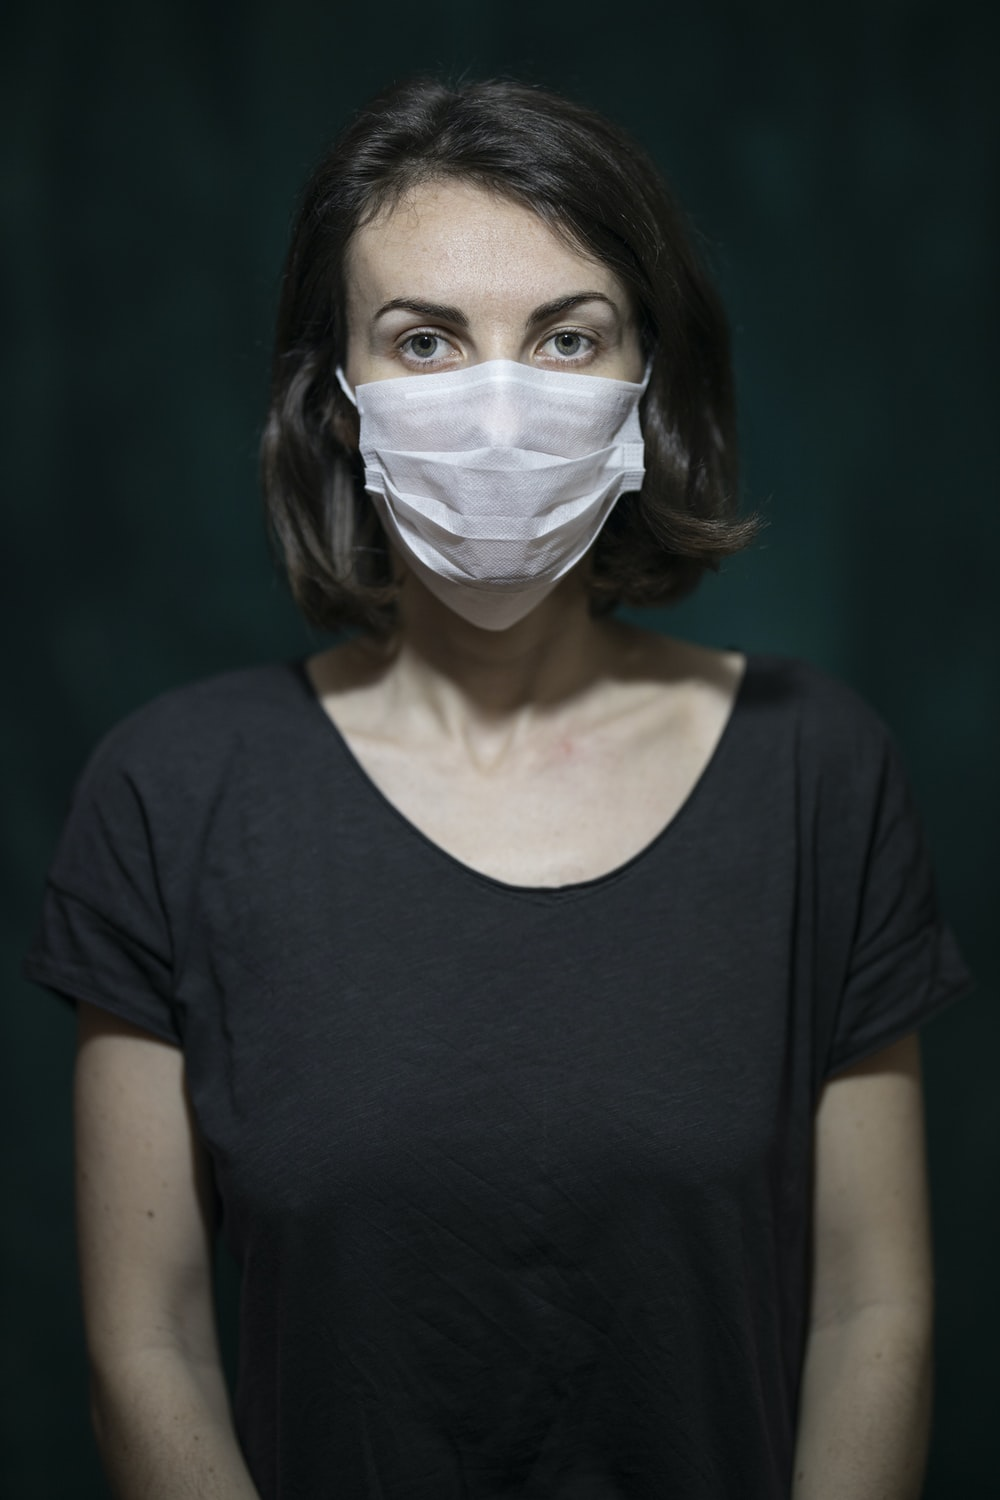 woman in black scoop neck shirt with white face mask